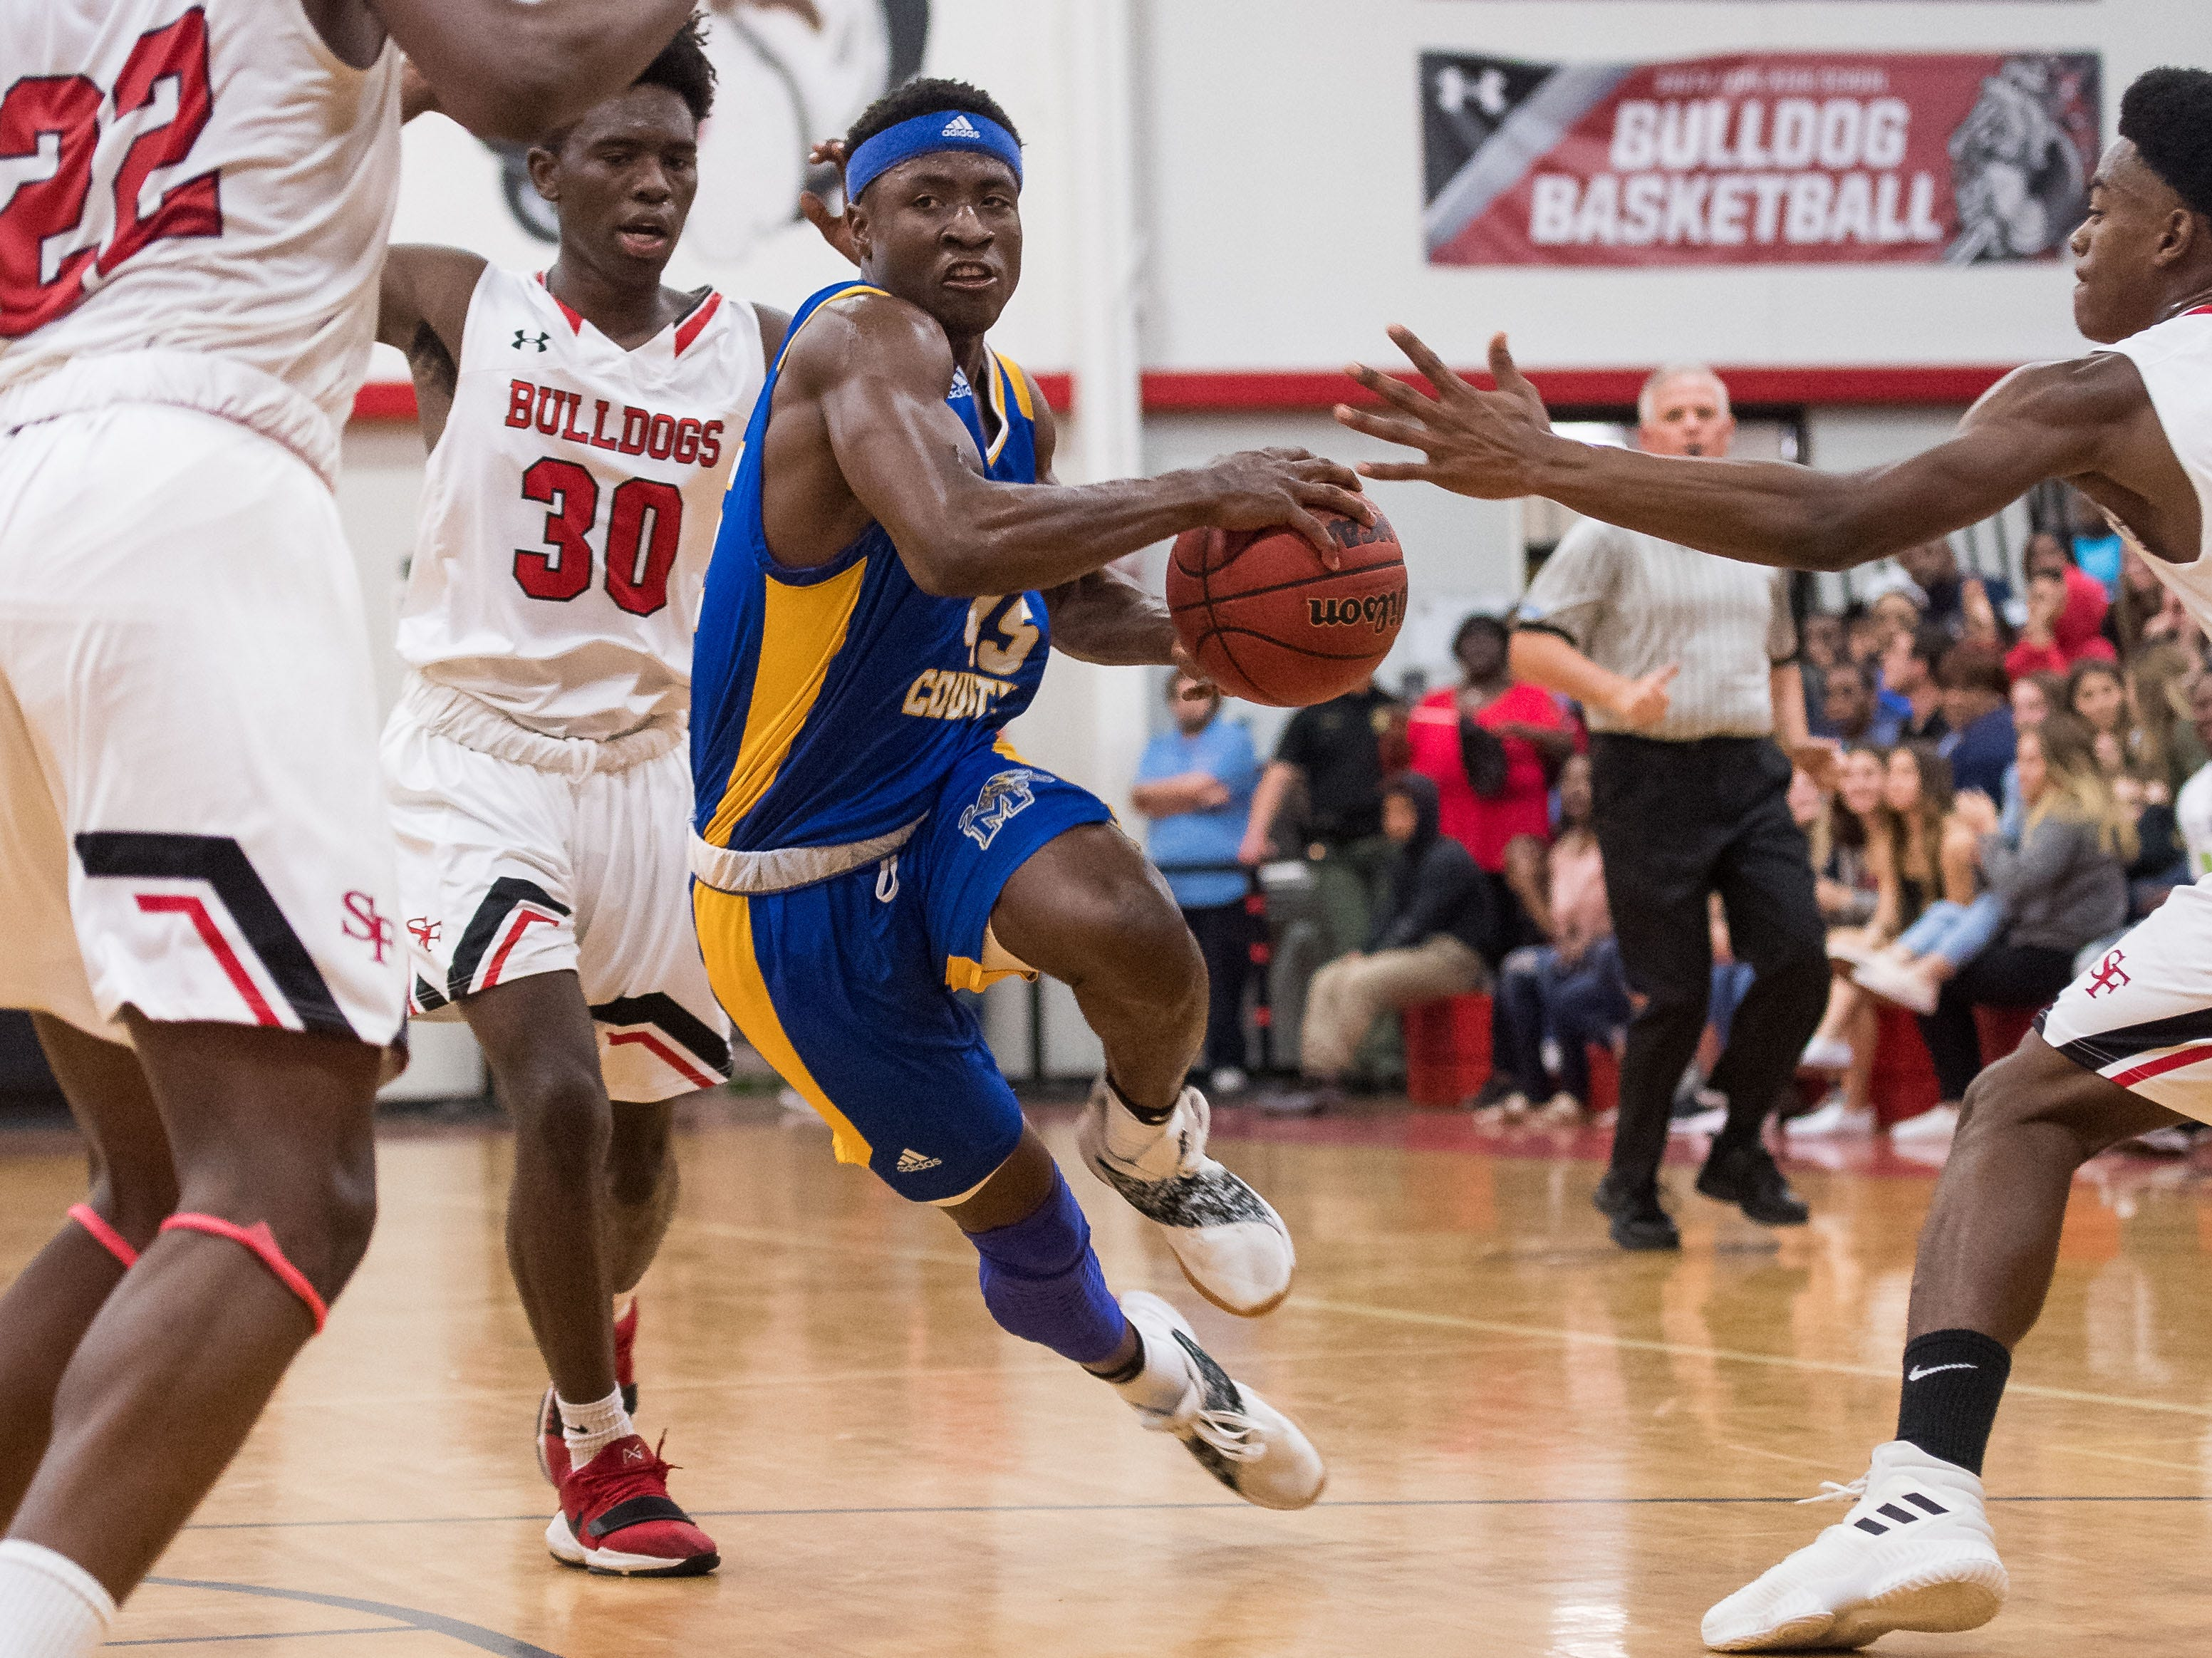 Martin County's George Johnson (center) drives with momentum to the basket but is fouled as South Fork's (from right) Darnell Johnson, Zach Lee and Nochly Rene defend during the second period of the high school boys basketball game Wednesday, Feb. 6, 2019, at South Fork High School in Tropical Farms.